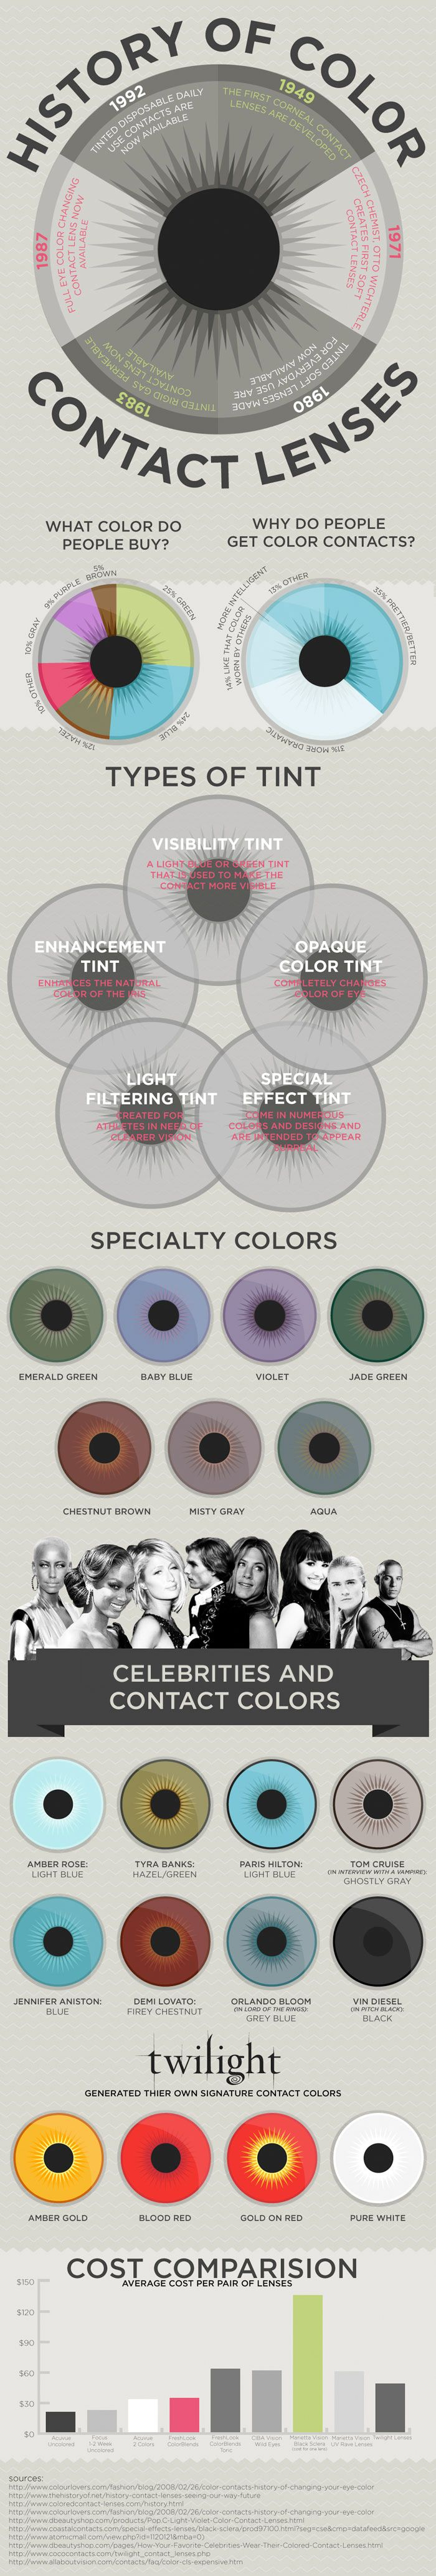 The History of Color Contact Lenses. As somebody who is